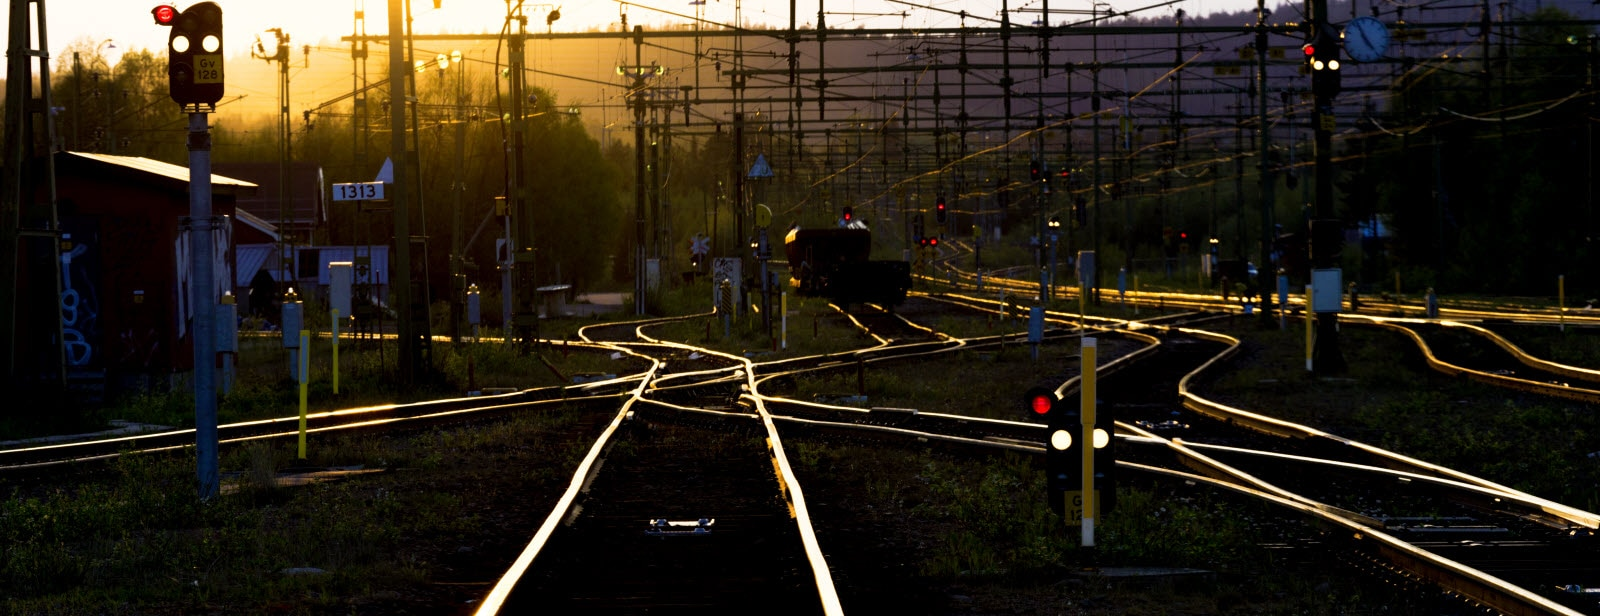 Gallevari-railroad-tracks.jpg